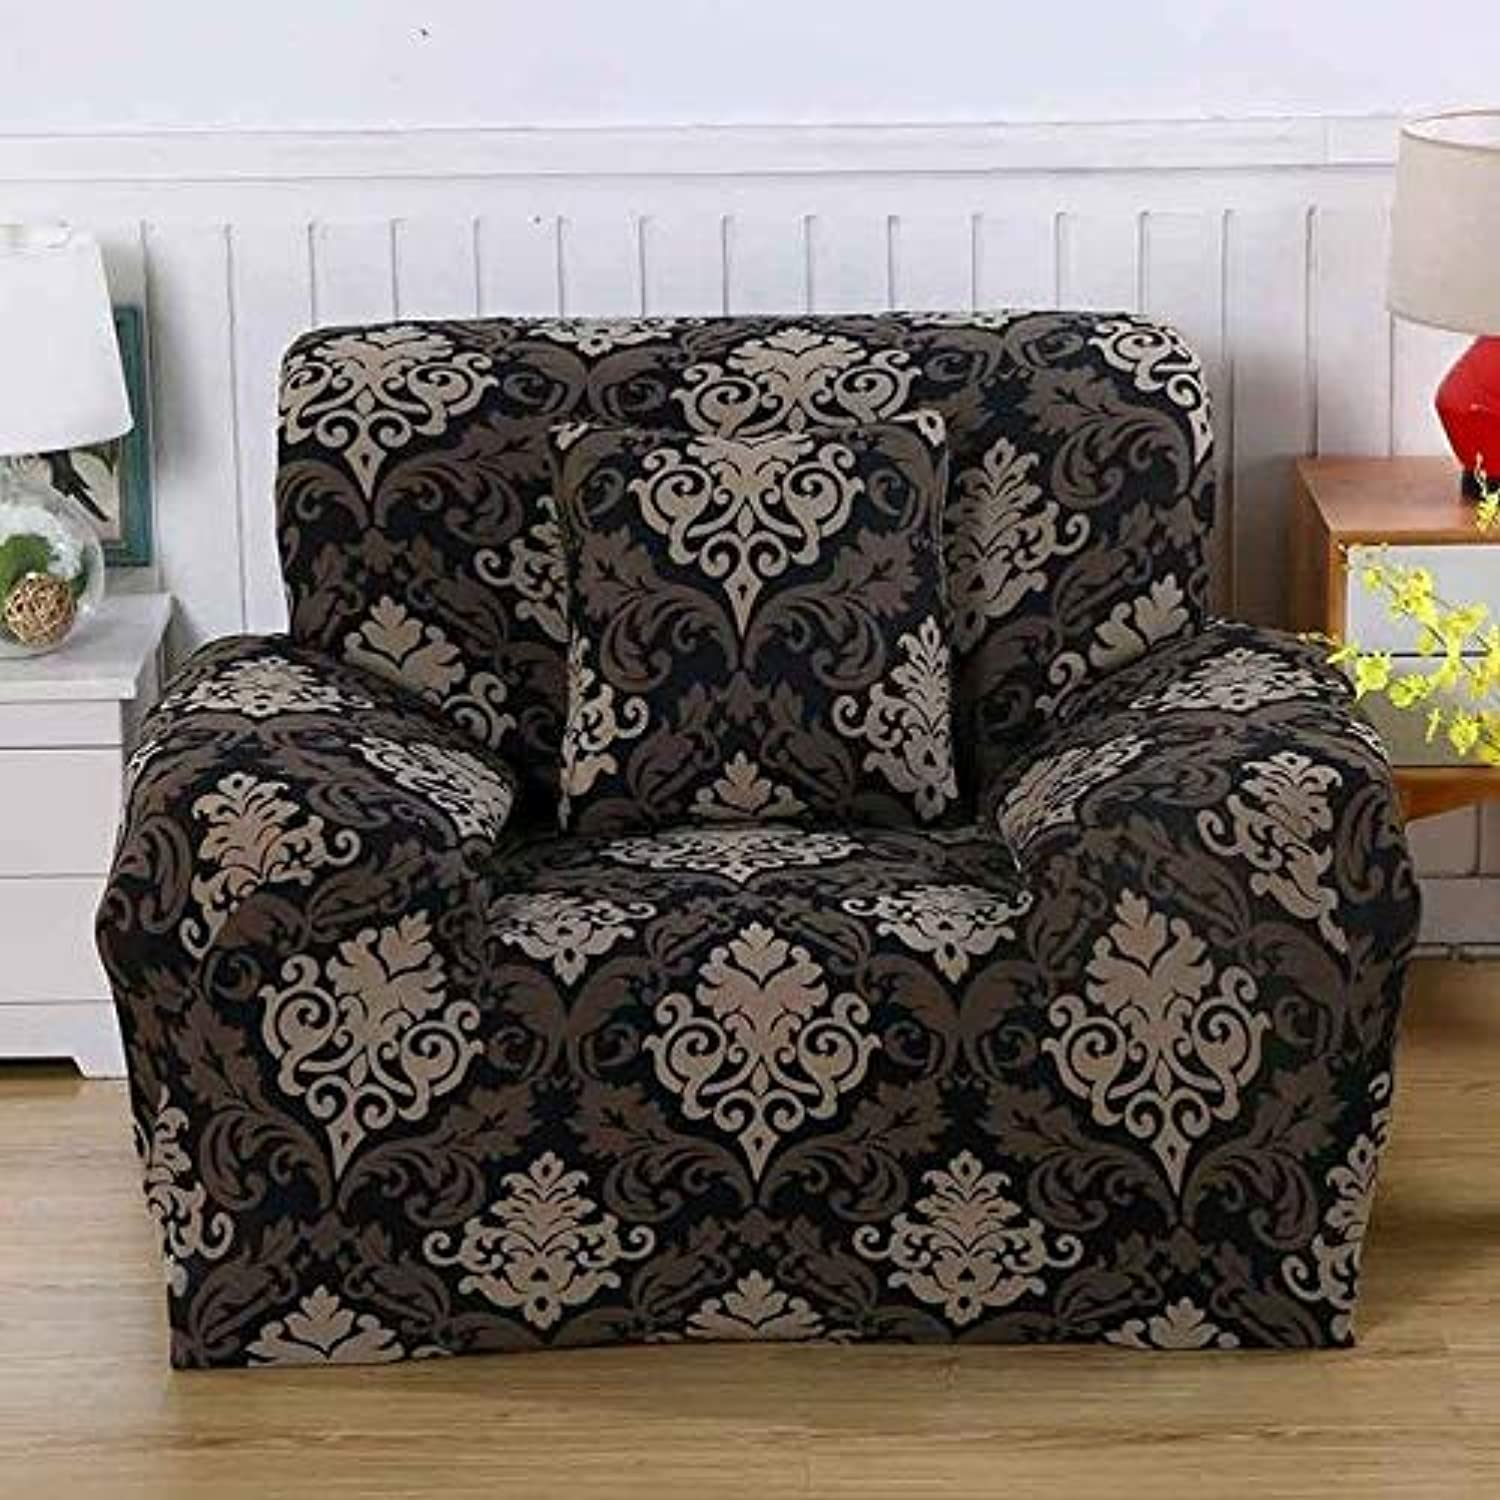 Modern Removable Sofa Covers Elastic Tight Wrap All-Inclusive Slip-Resistant Sofa Cover Spandex Elastic Floral Print Sofa Covers   bluee, Single seat